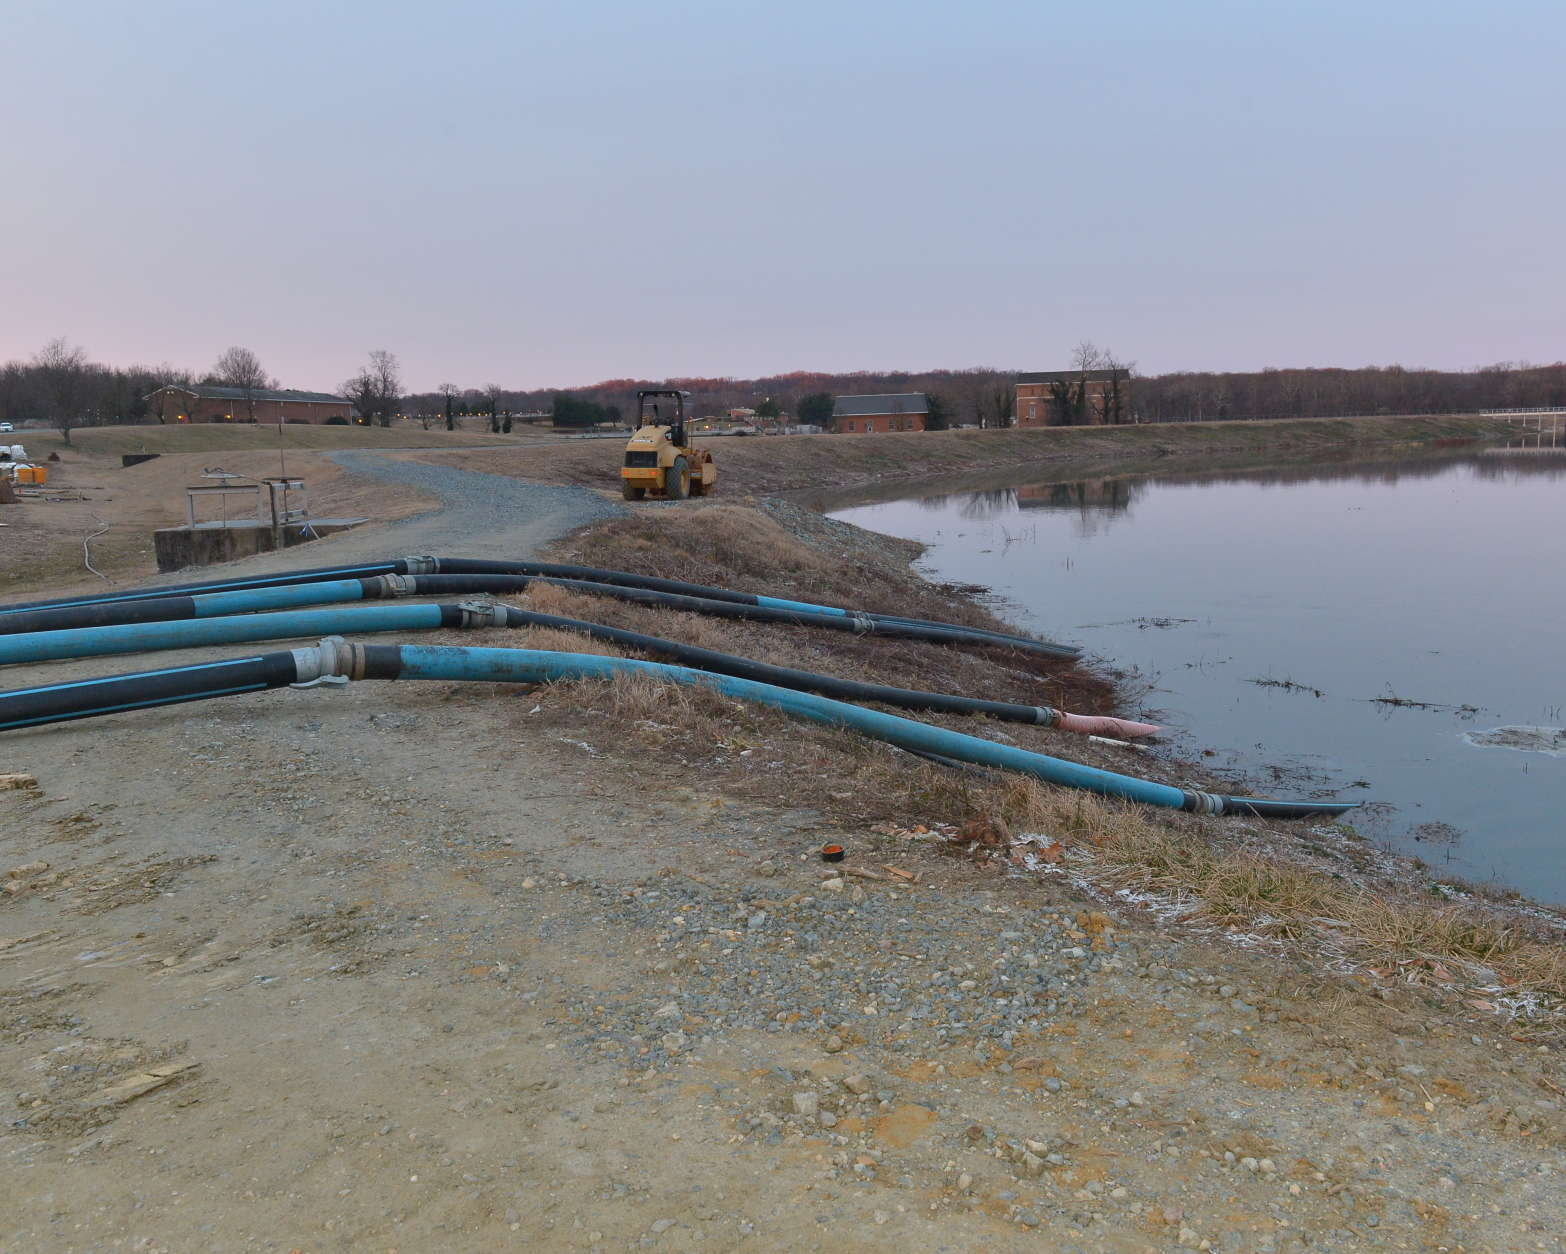 A look at the temporary system the WSSC has established to move the raw sewage overflow. (Courtesy WSSC)